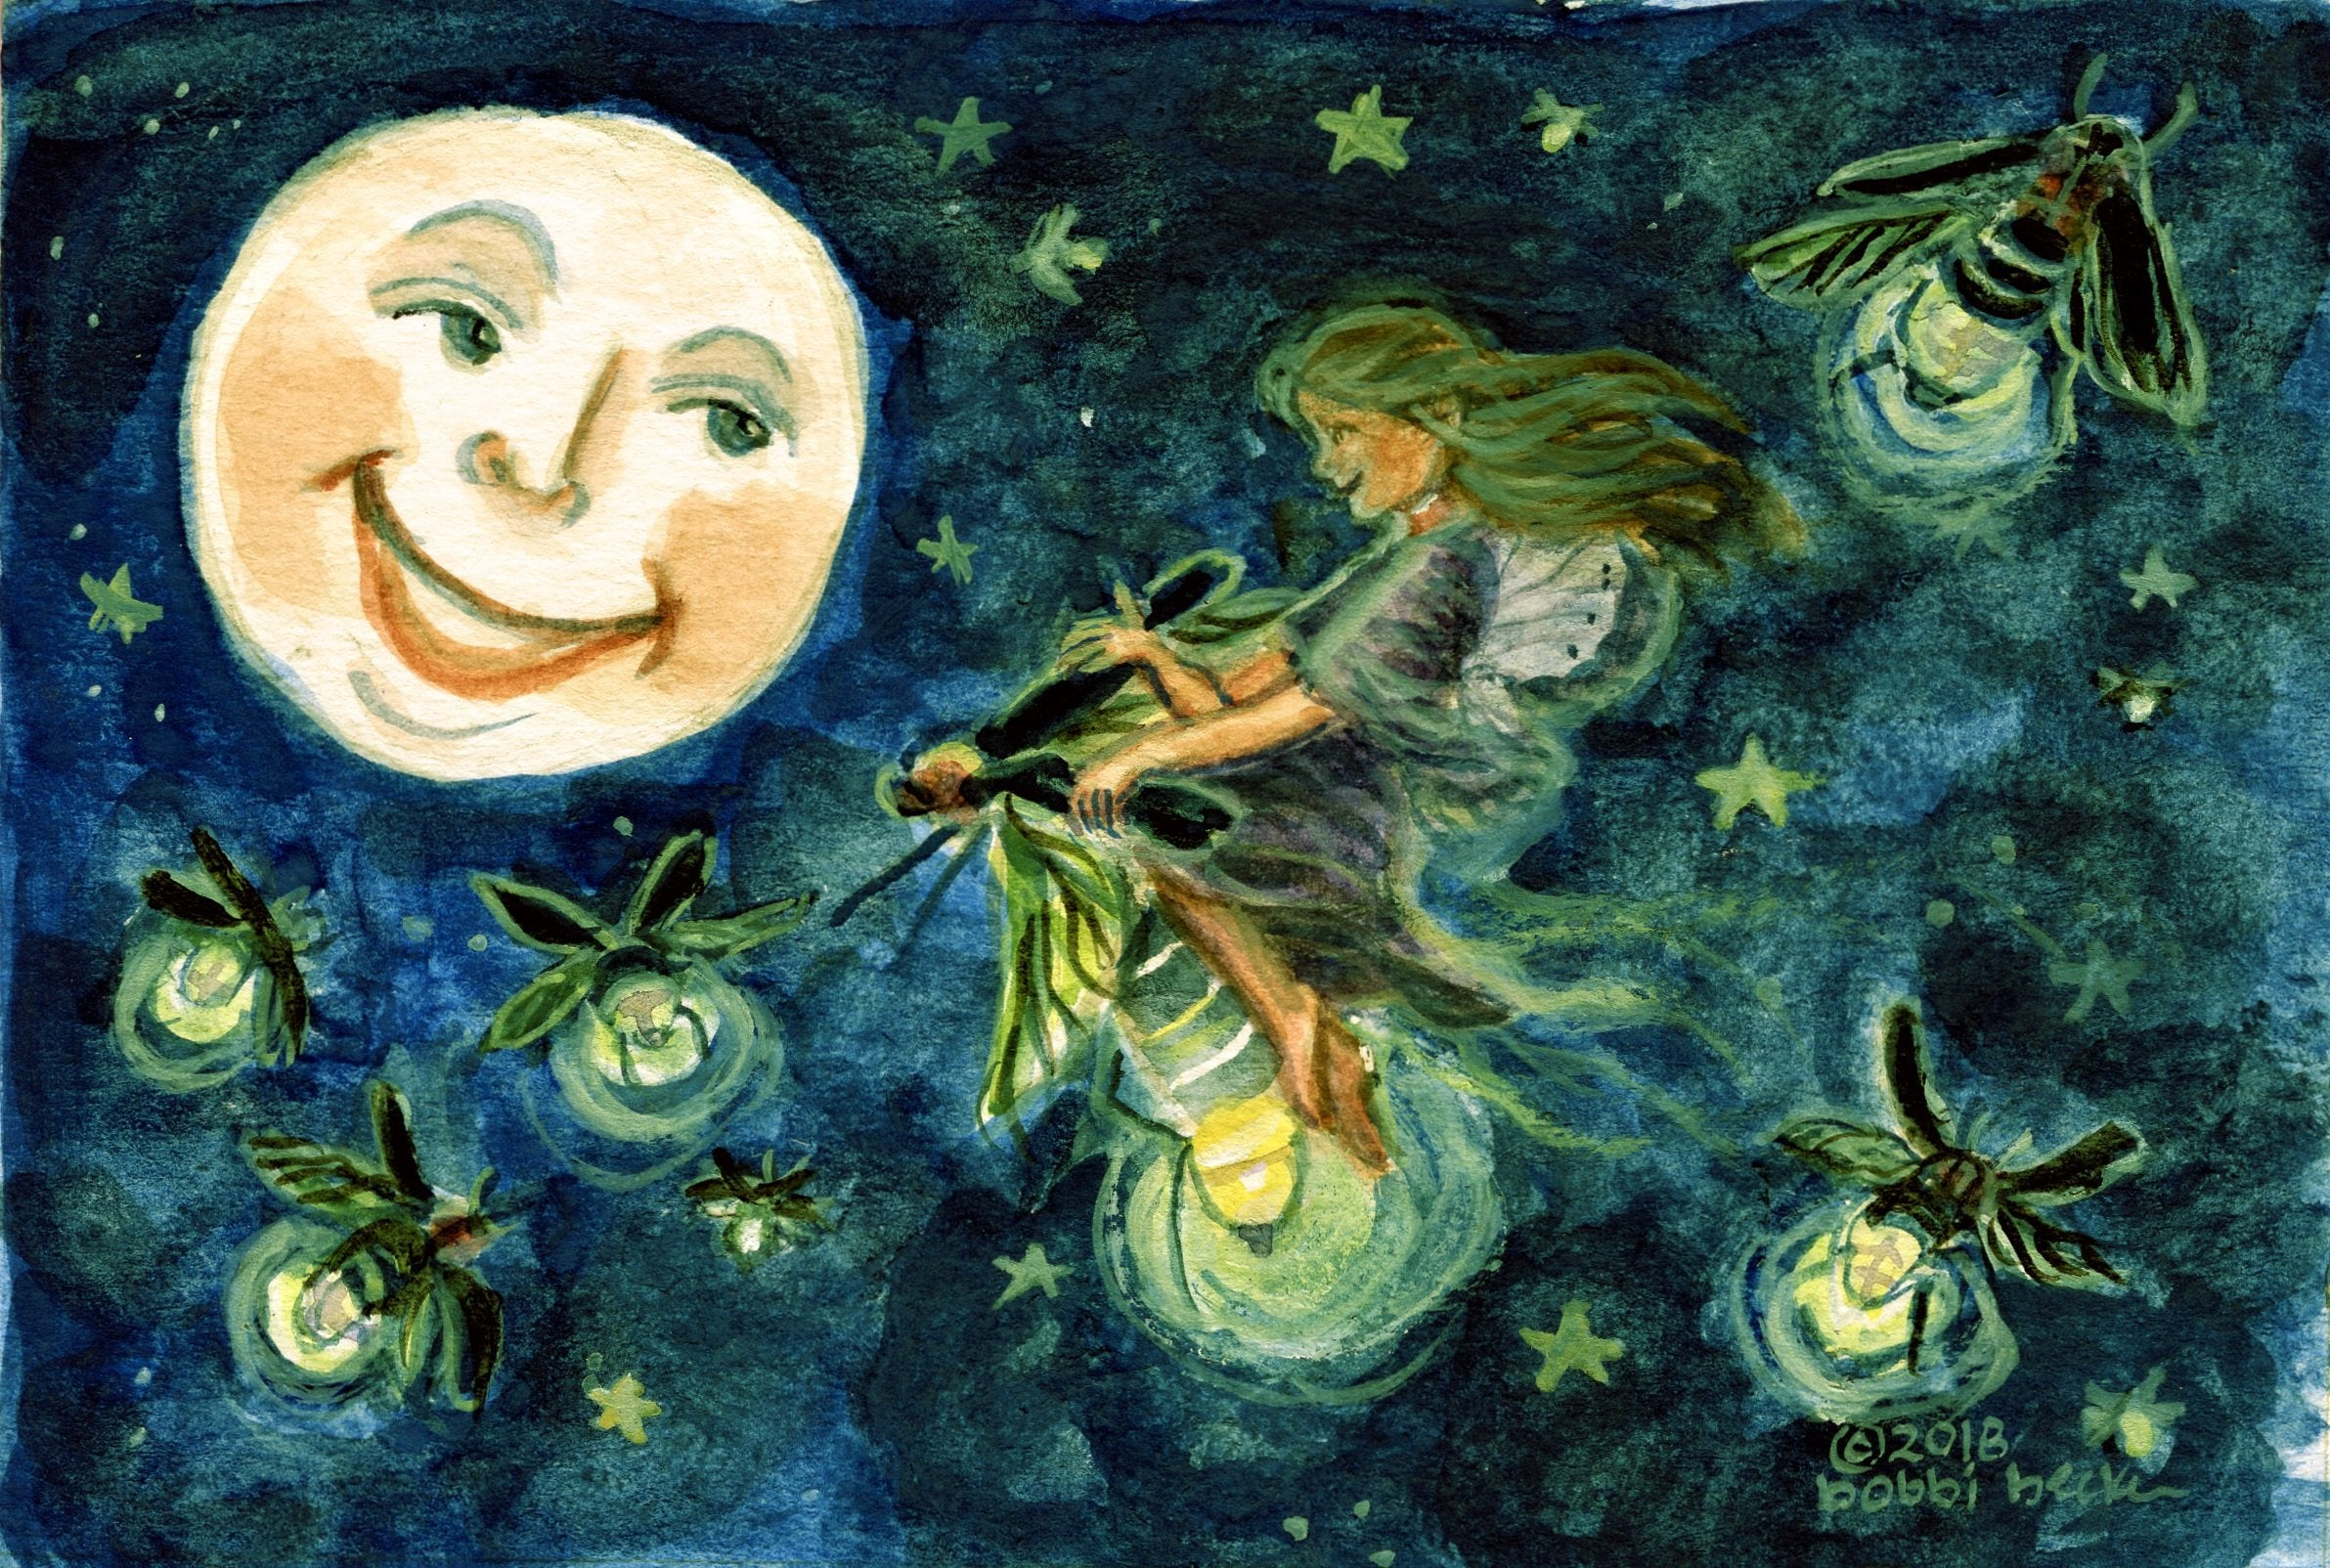 Lightning bugs, Fireflies, Full Moon, Fairy, Summer, bobbi becker, watercolor print